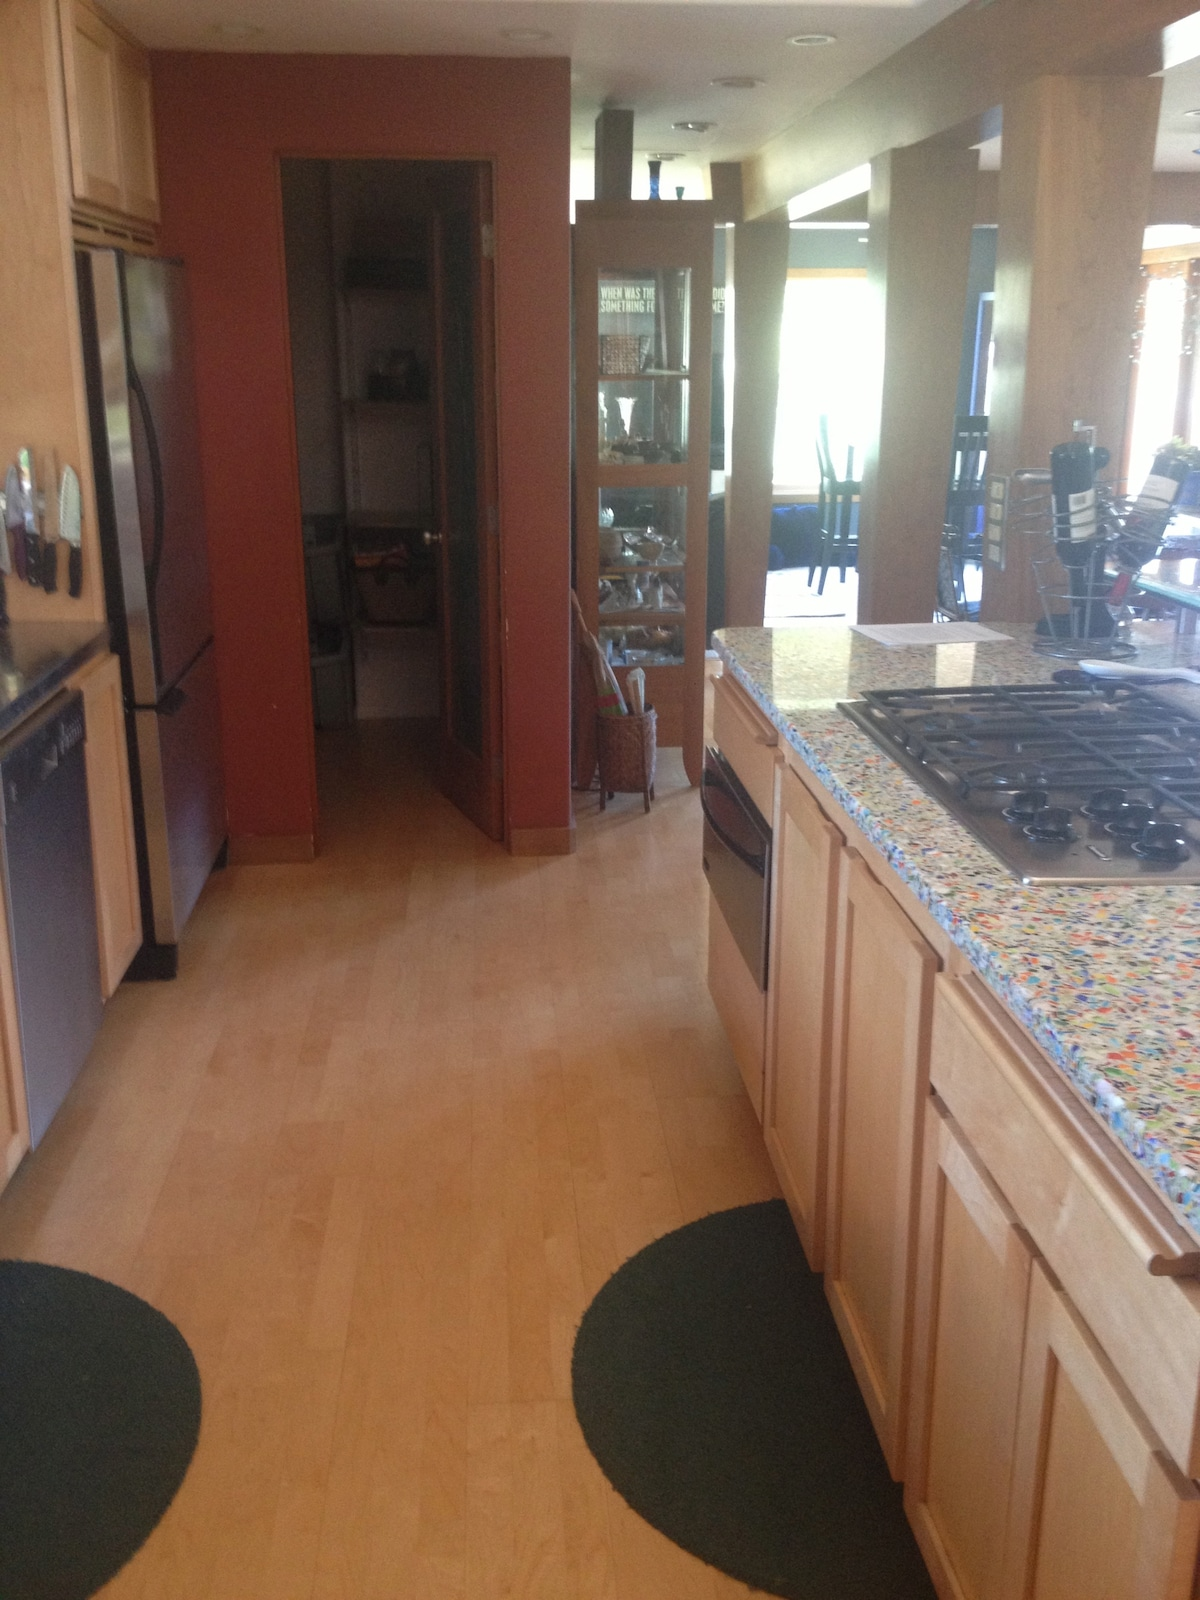 Kitchen with a view to the pantry.